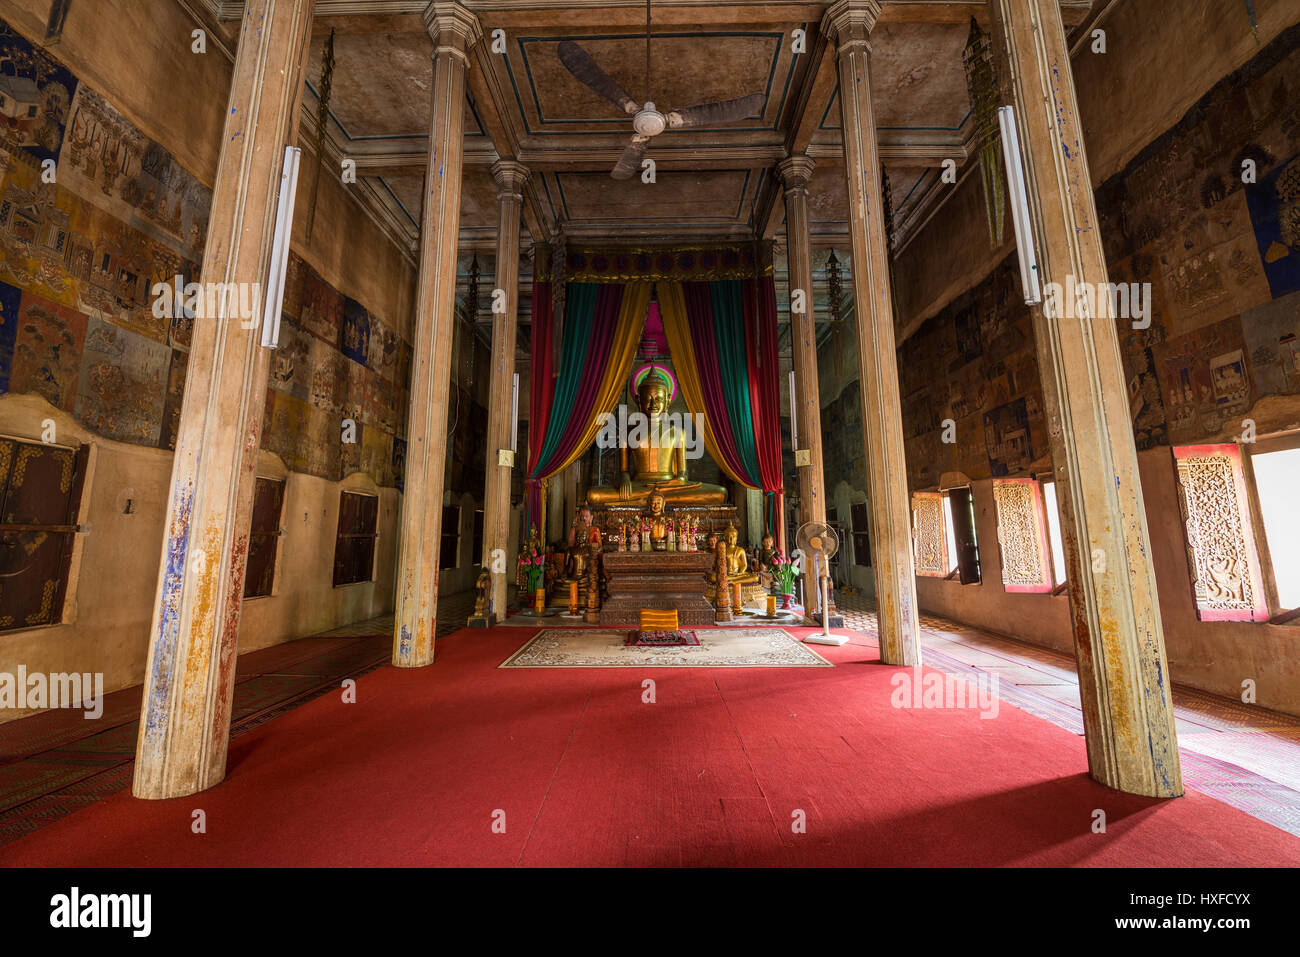 Interior of the Wat Bo temple in the Siem Reap, Cambodia. Stock Photo